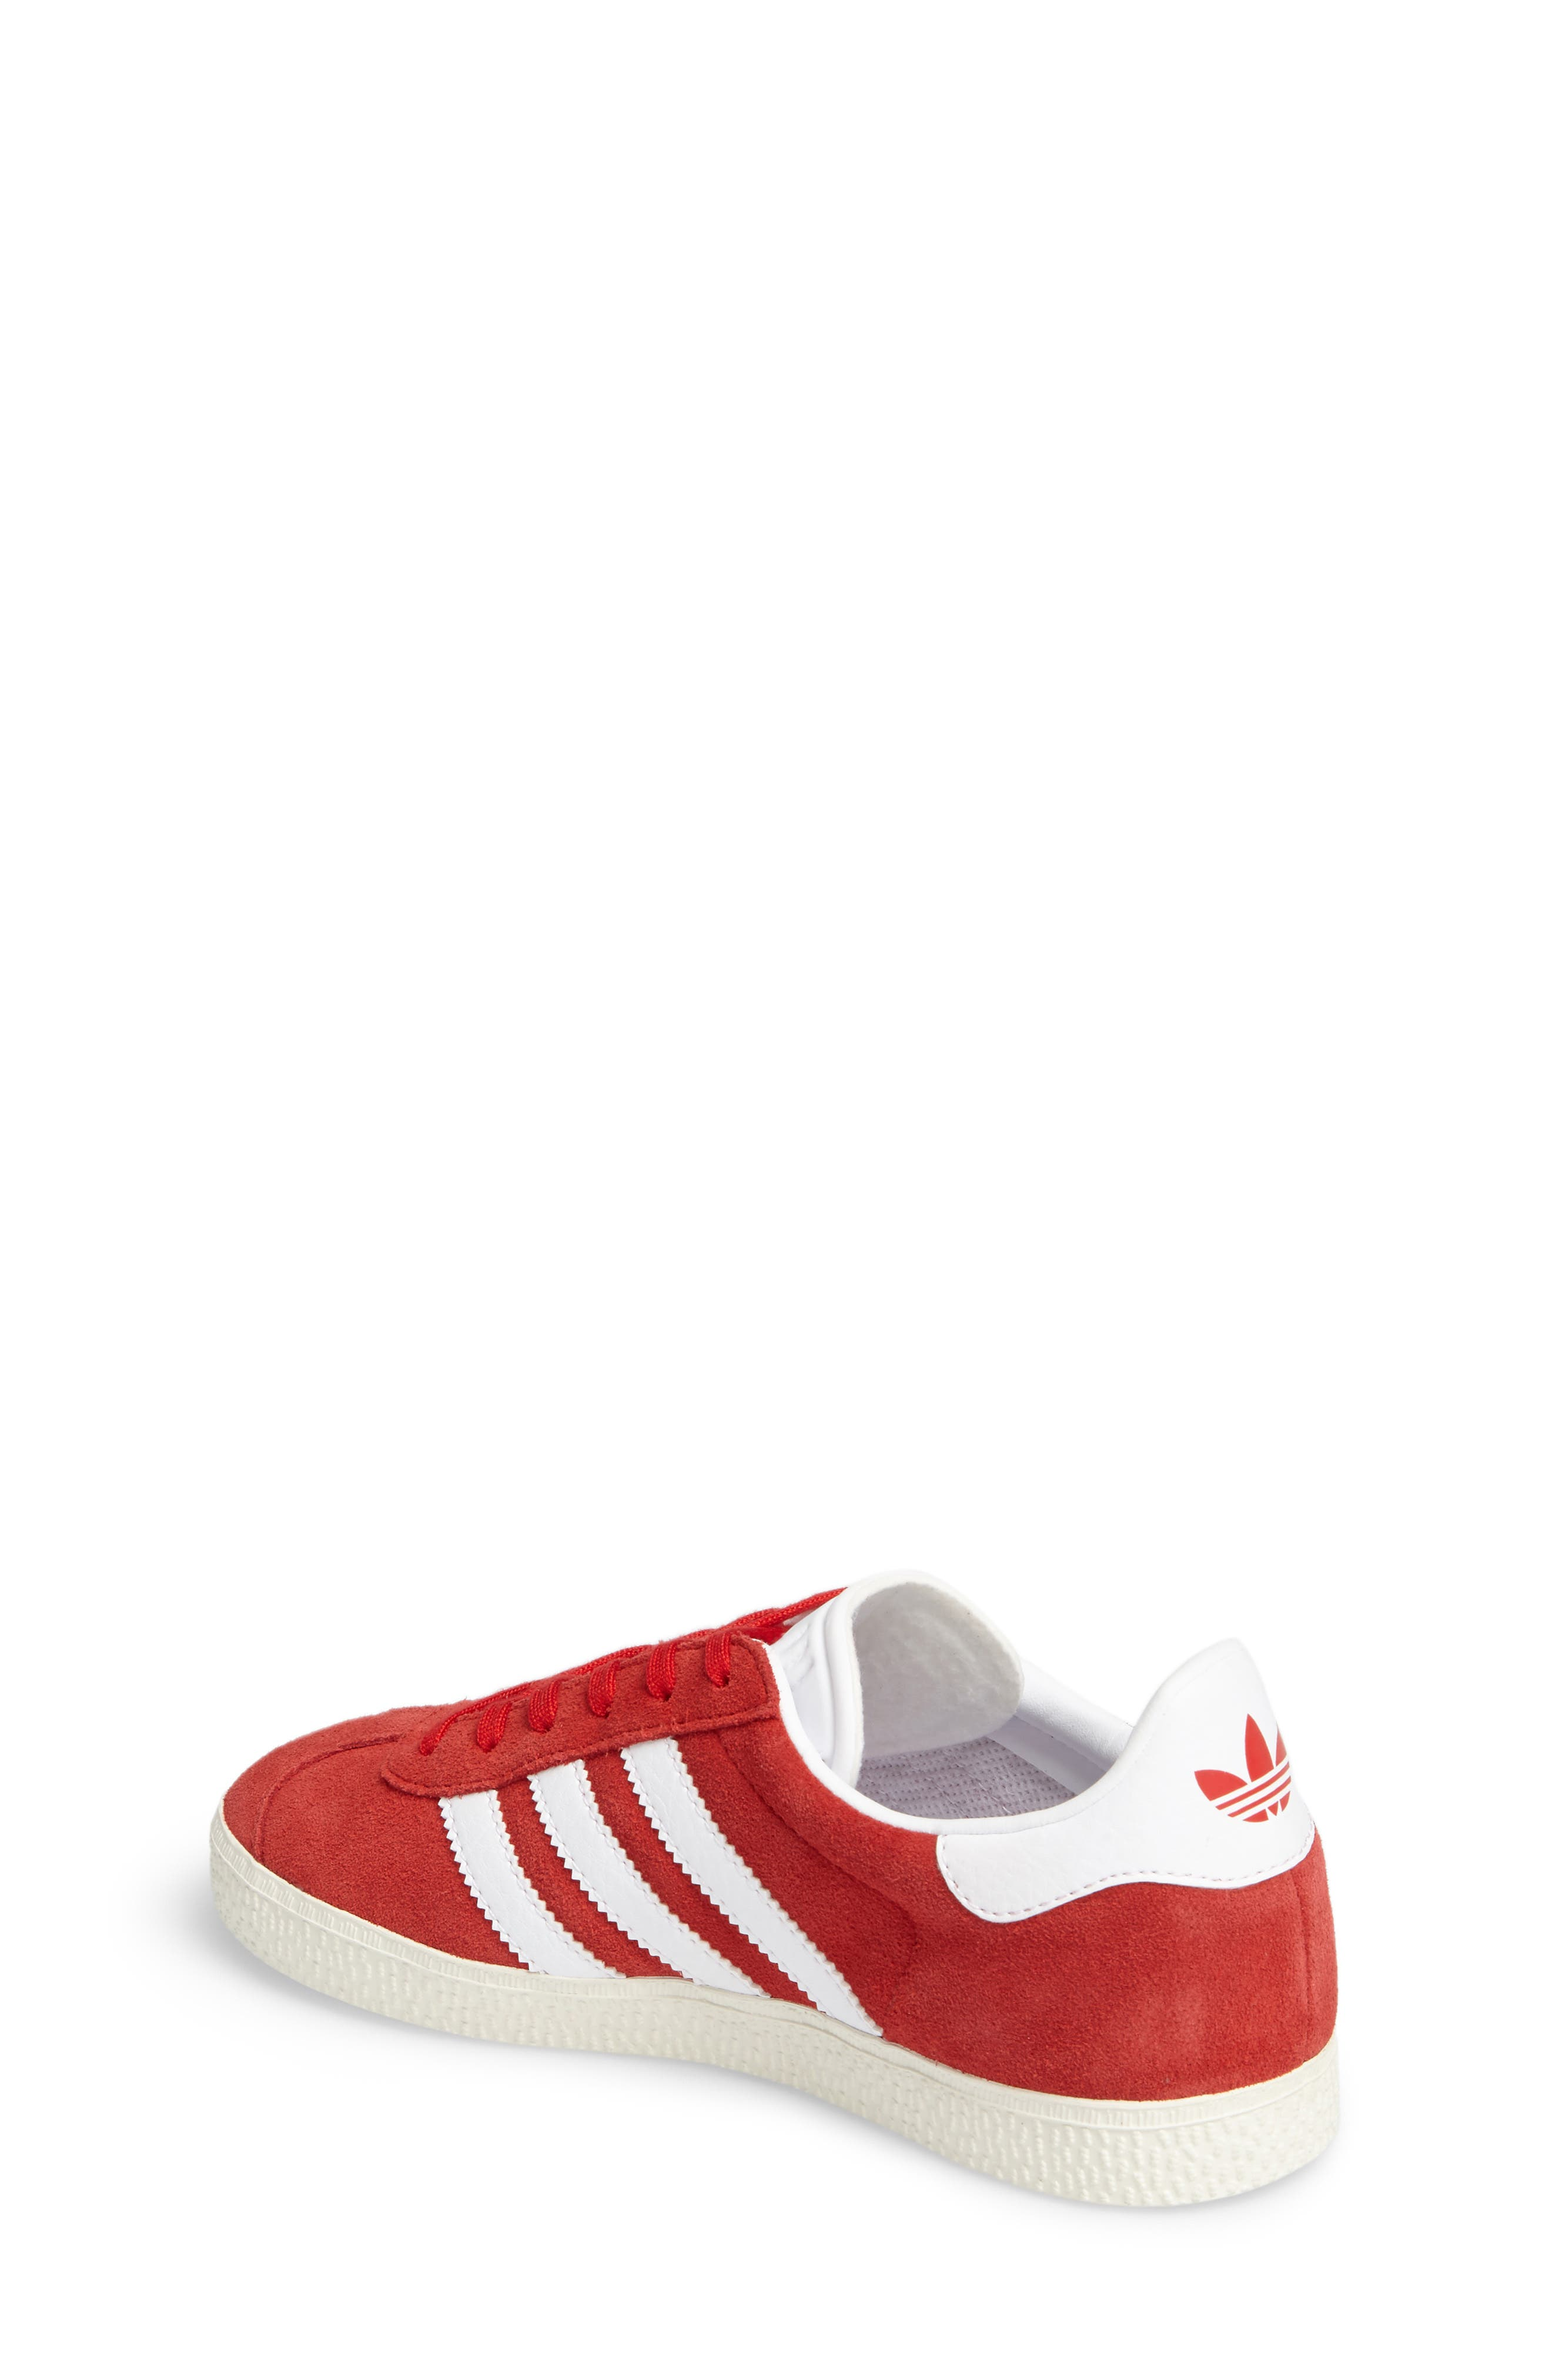 Alternate Image 2  - adidas Gazelle Sneaker (Toddler & Little Kid)